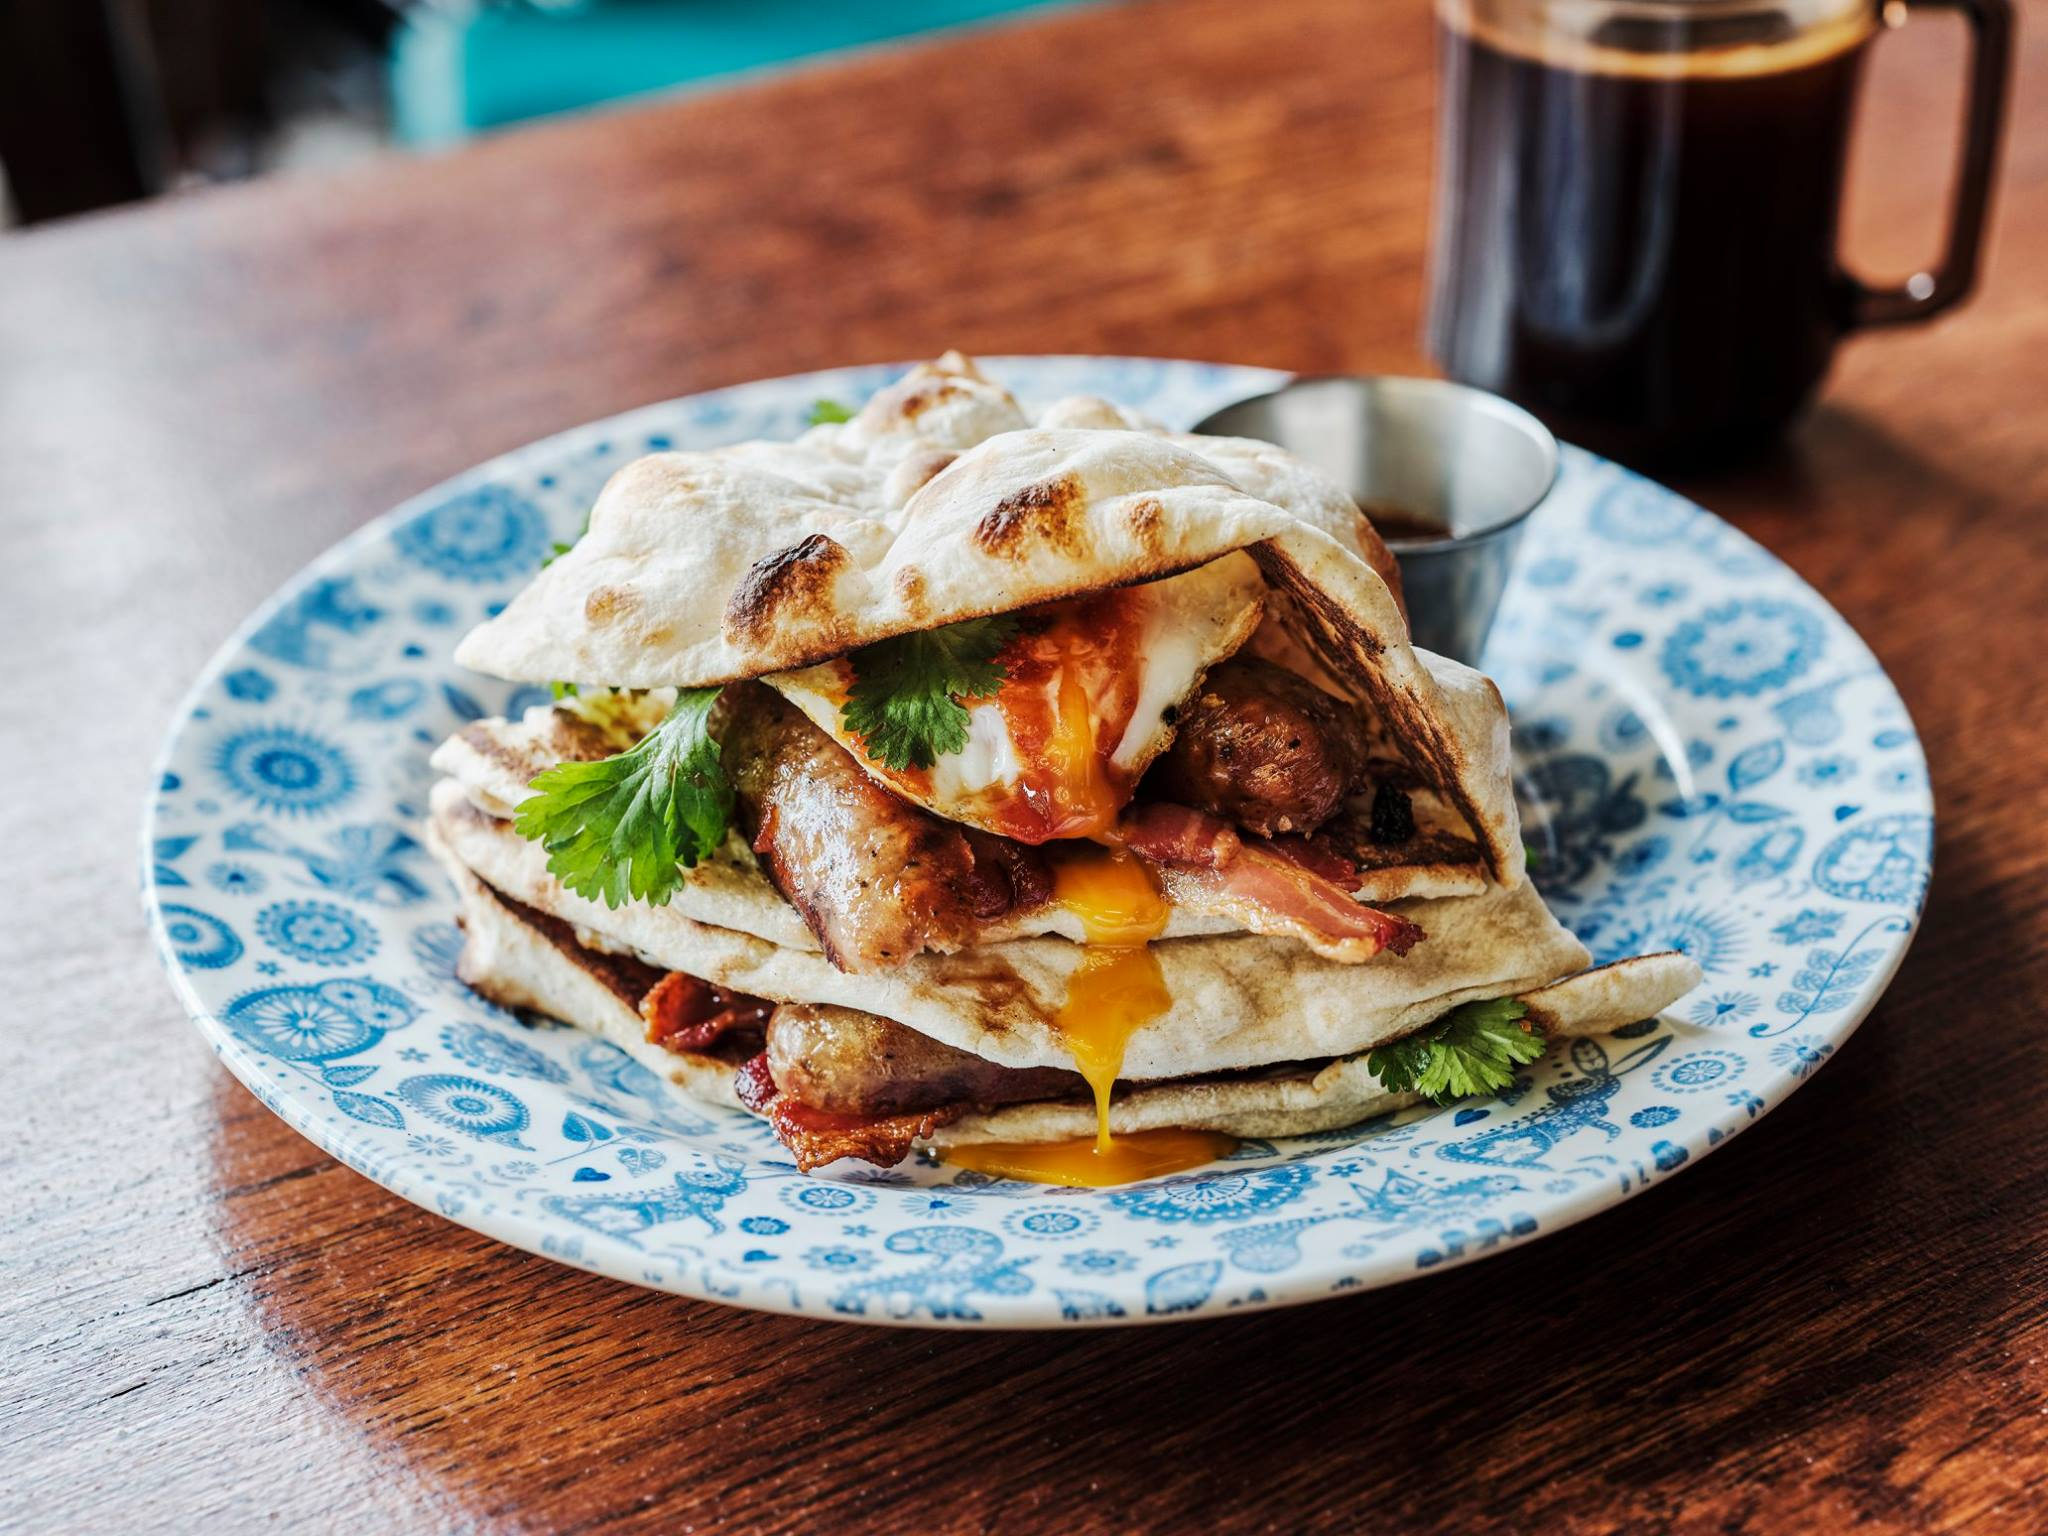 I Finally Got My Hands On The Dishoom Breakfast But Is It As Good As Everyone Says